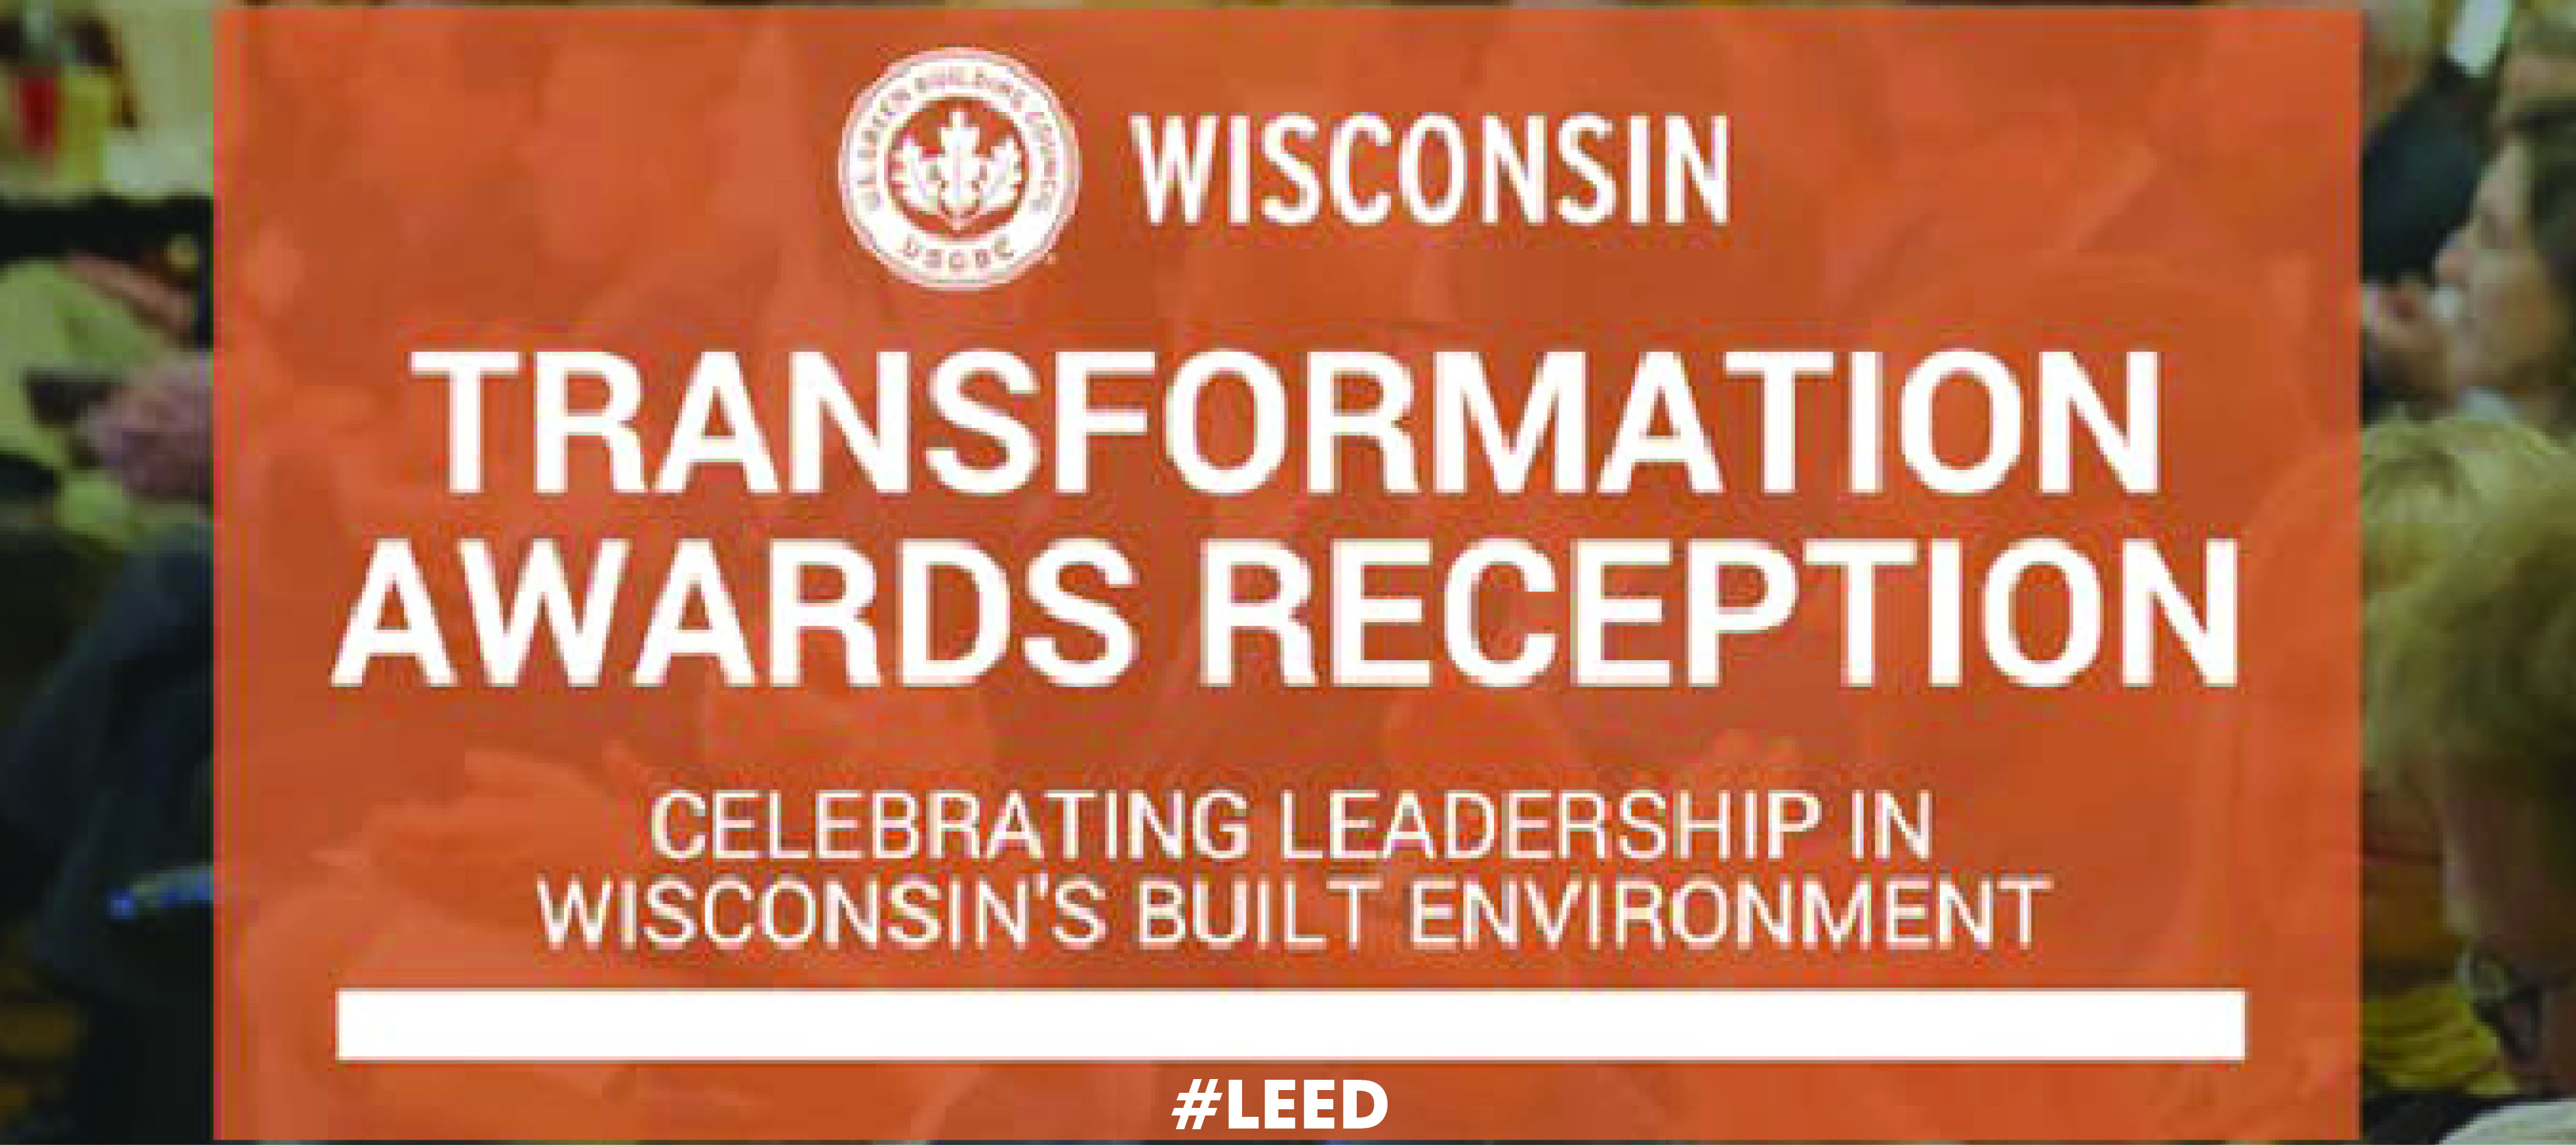 USGBC Wisconsin Leader Awards & Transformation Awards Reception Banner Image